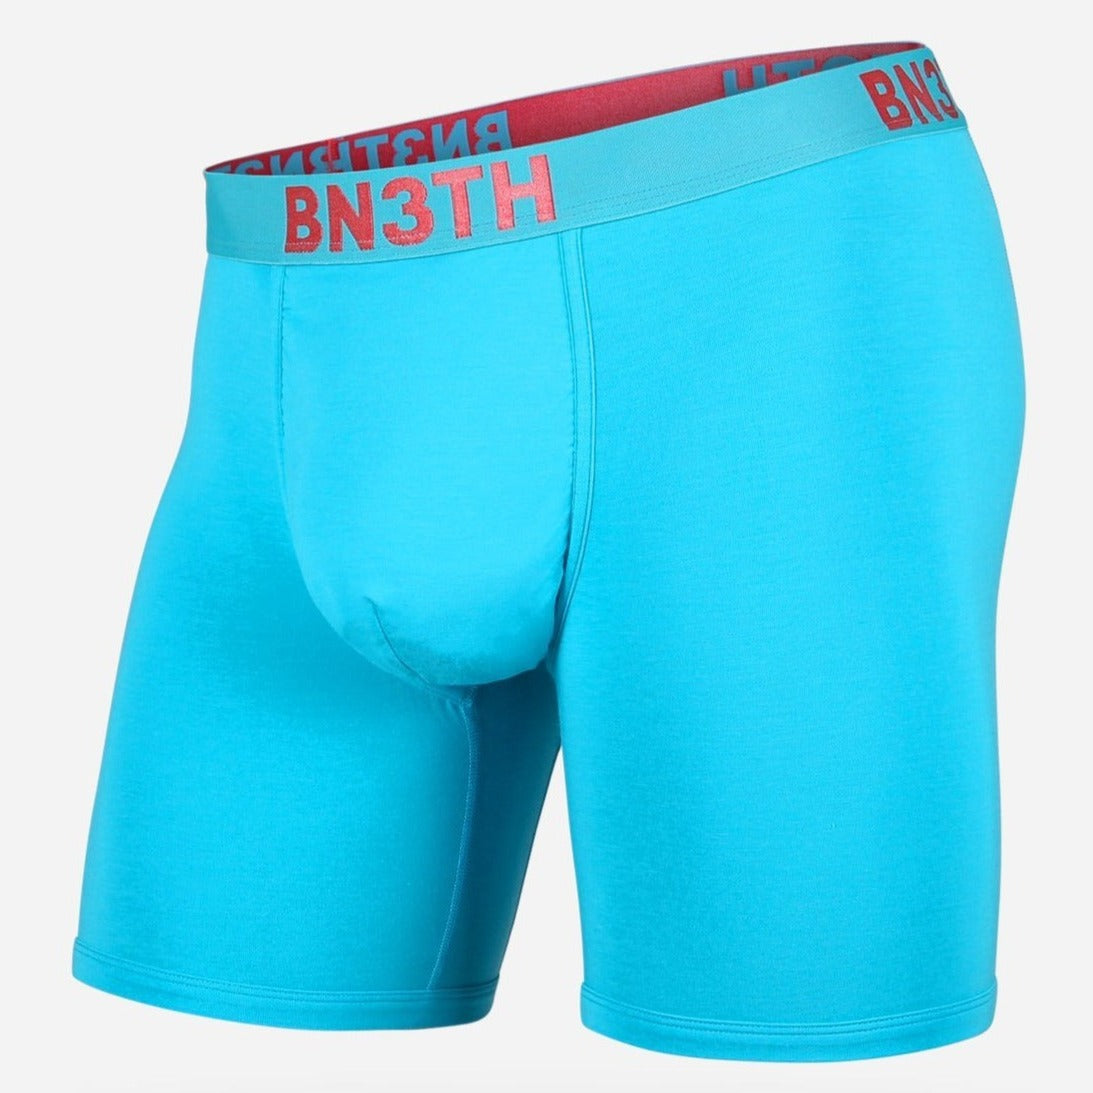 BN3TH - CLASSIC BOXER BRIEF SOLID SPRAY/CORAL